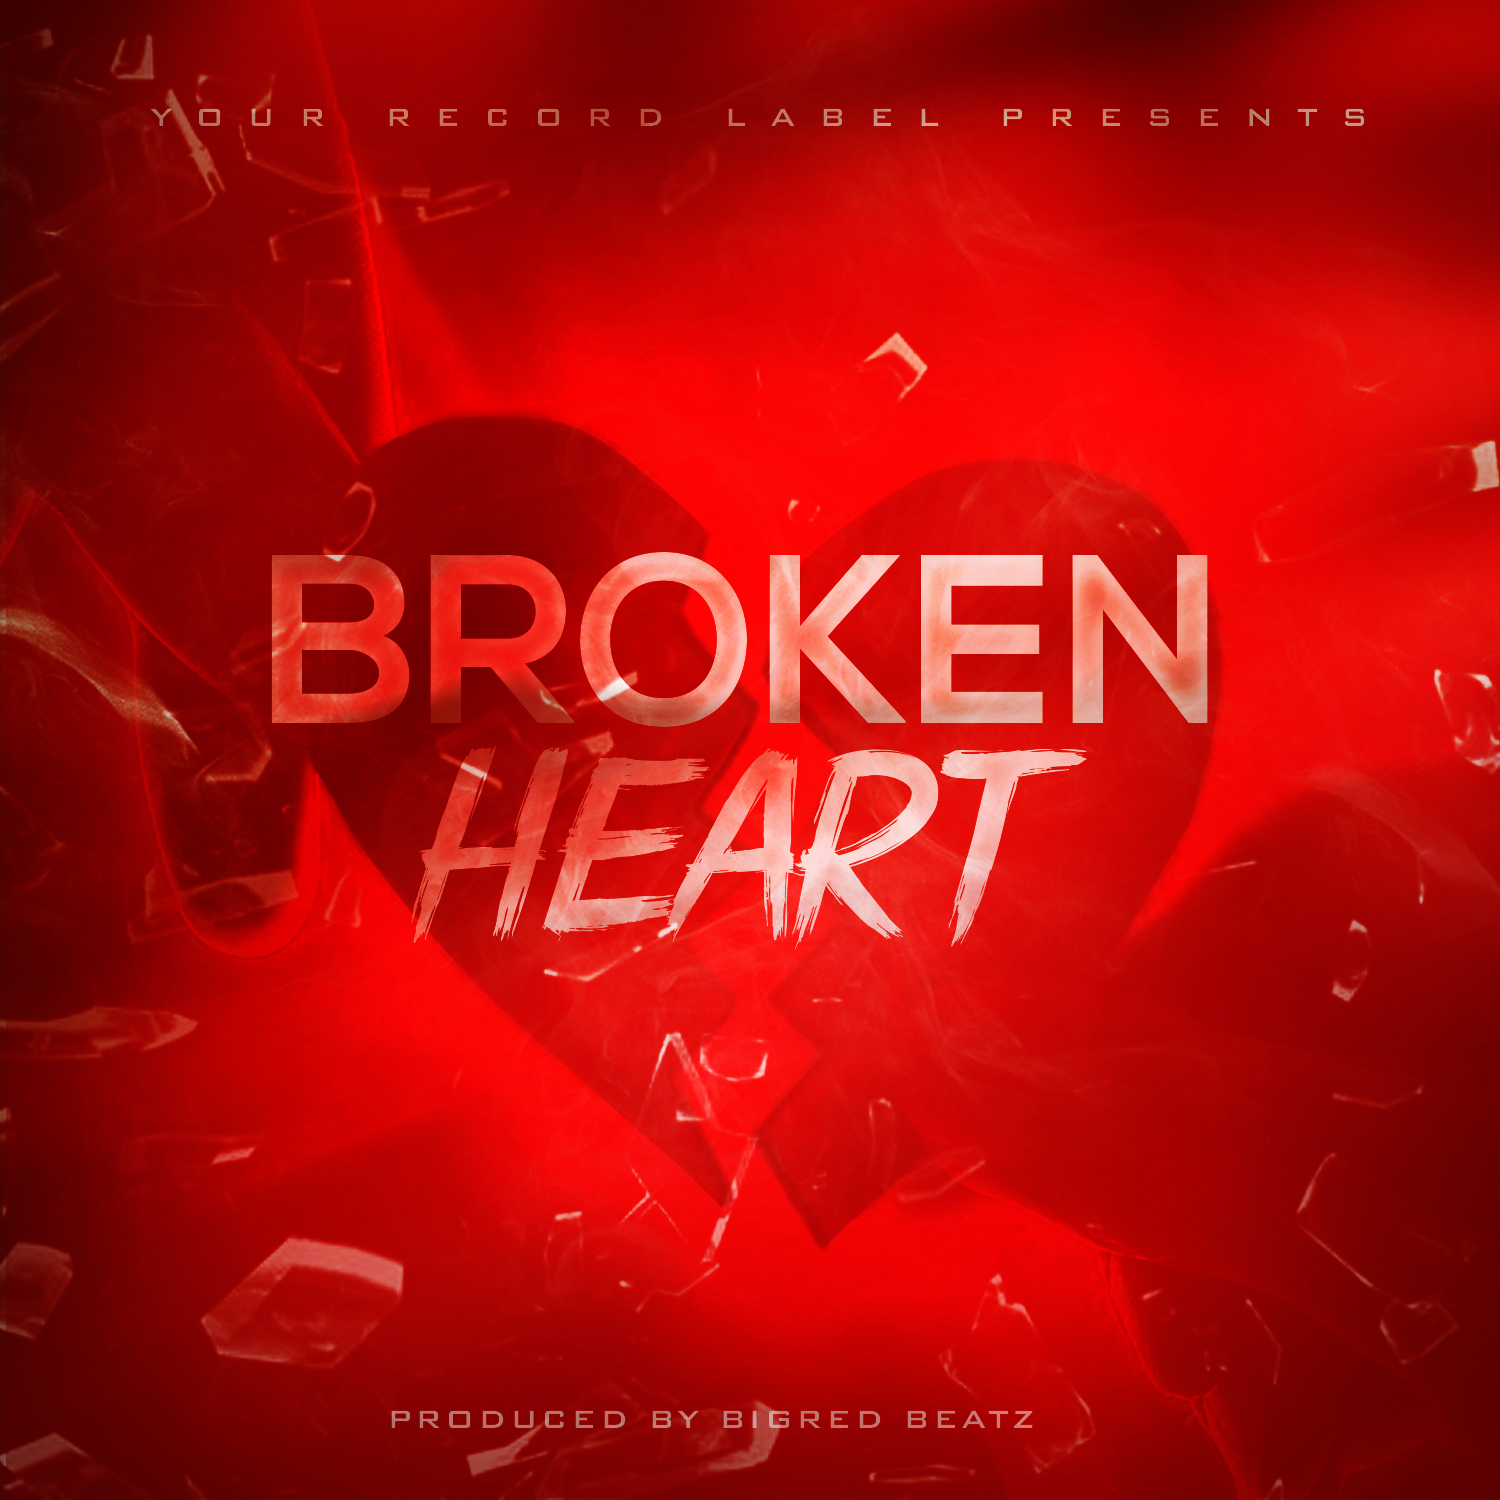 Broken hearts free album cover template mixtapecovers broken heart free album cover template maxwellsz